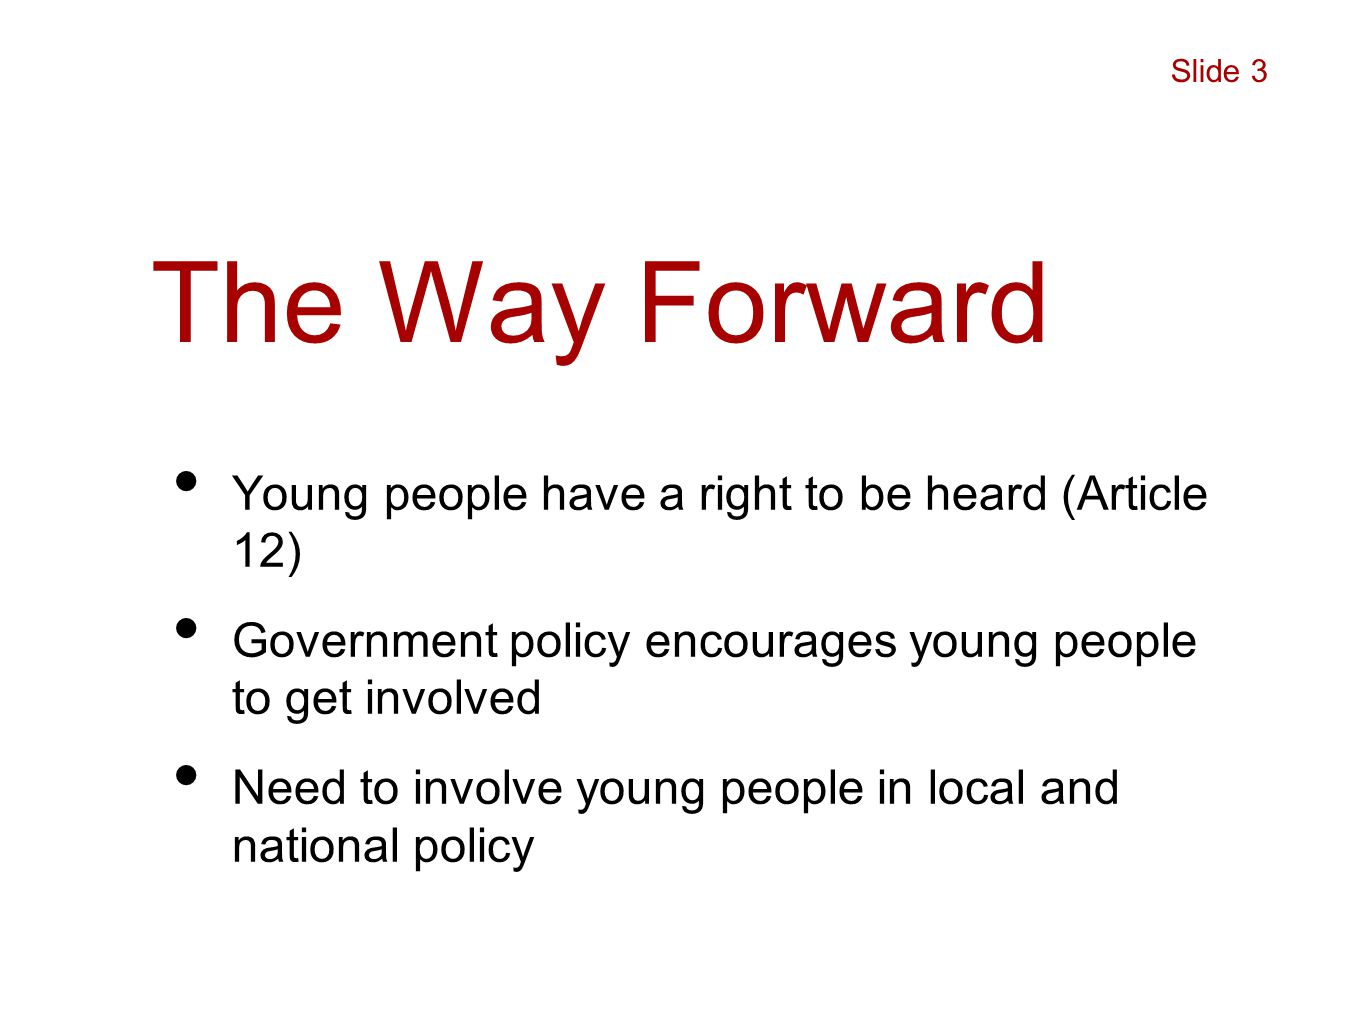 The Way Forward Young people have a right to be heard (Article 12) Government policy encourages young people to get involved Need to involve young people in local and national policy Slide 3